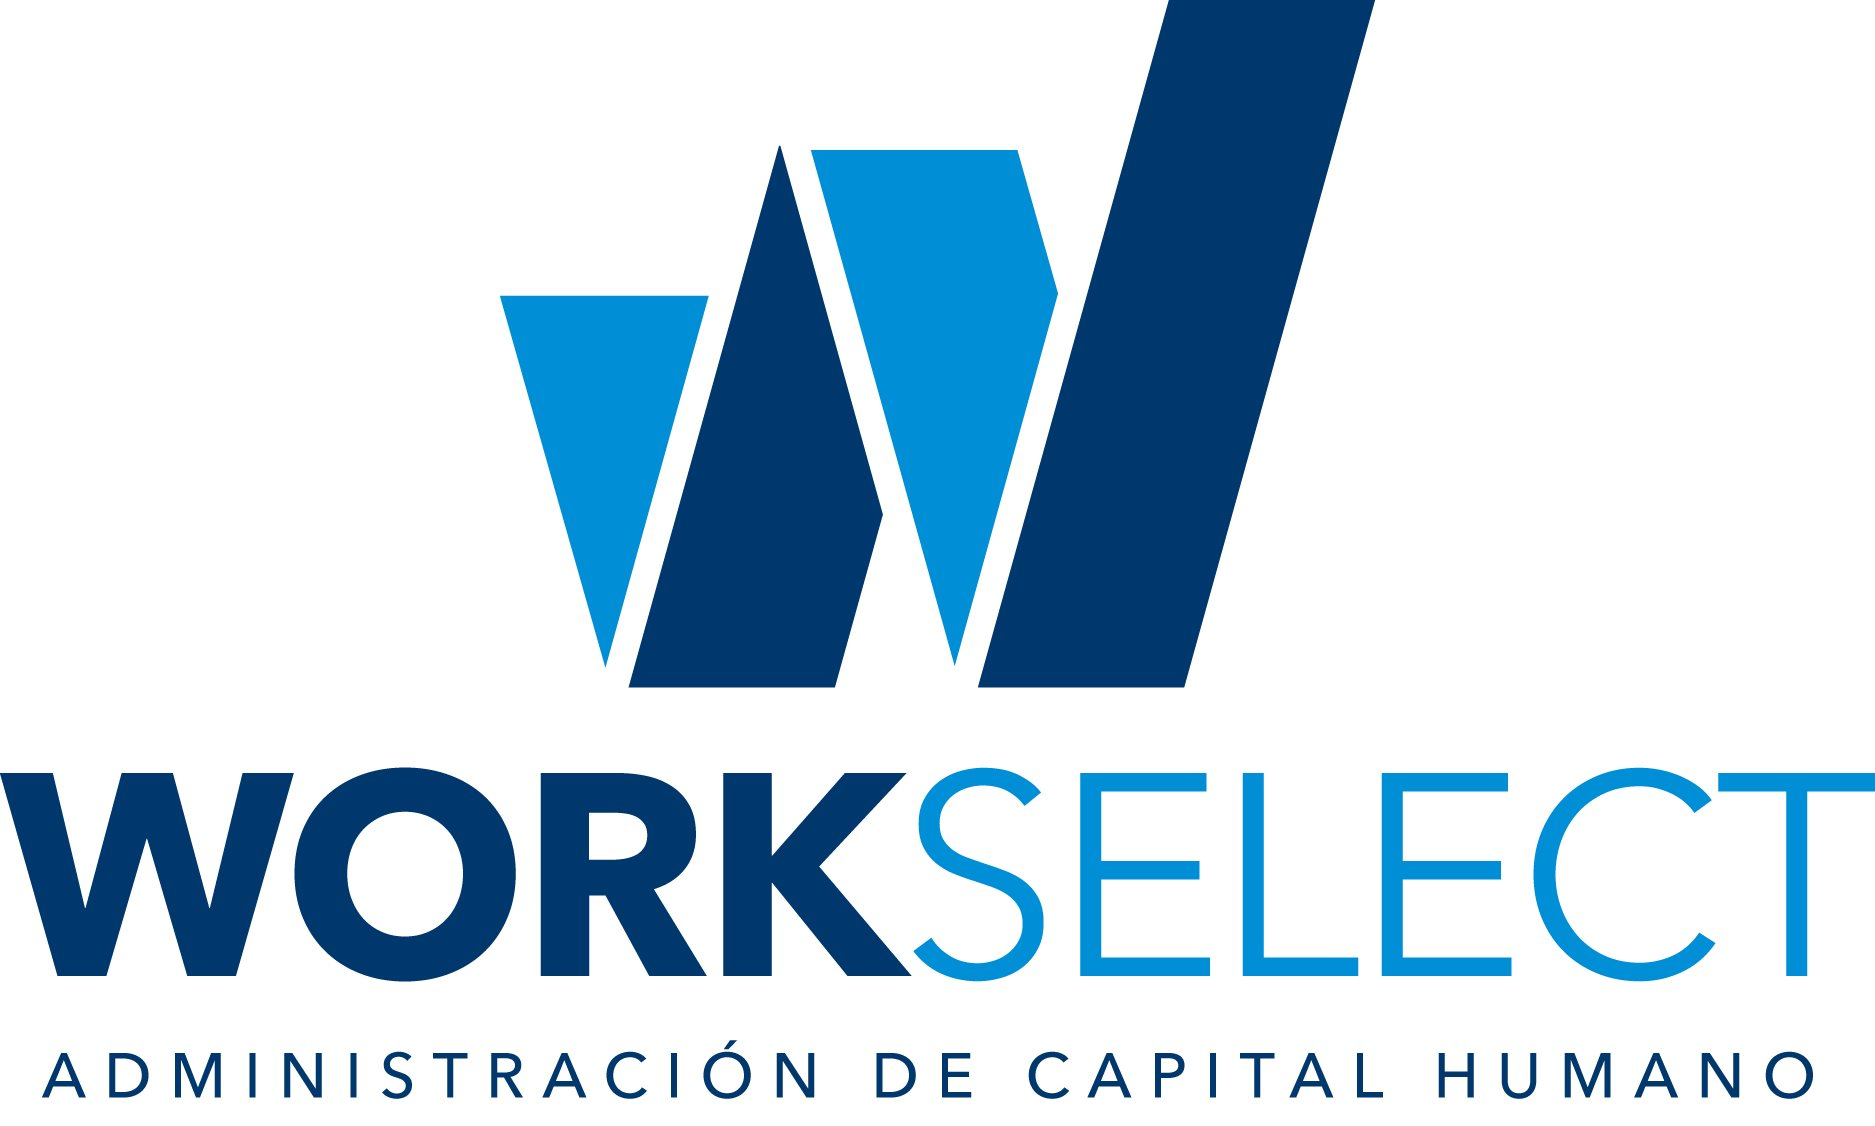 Workselect